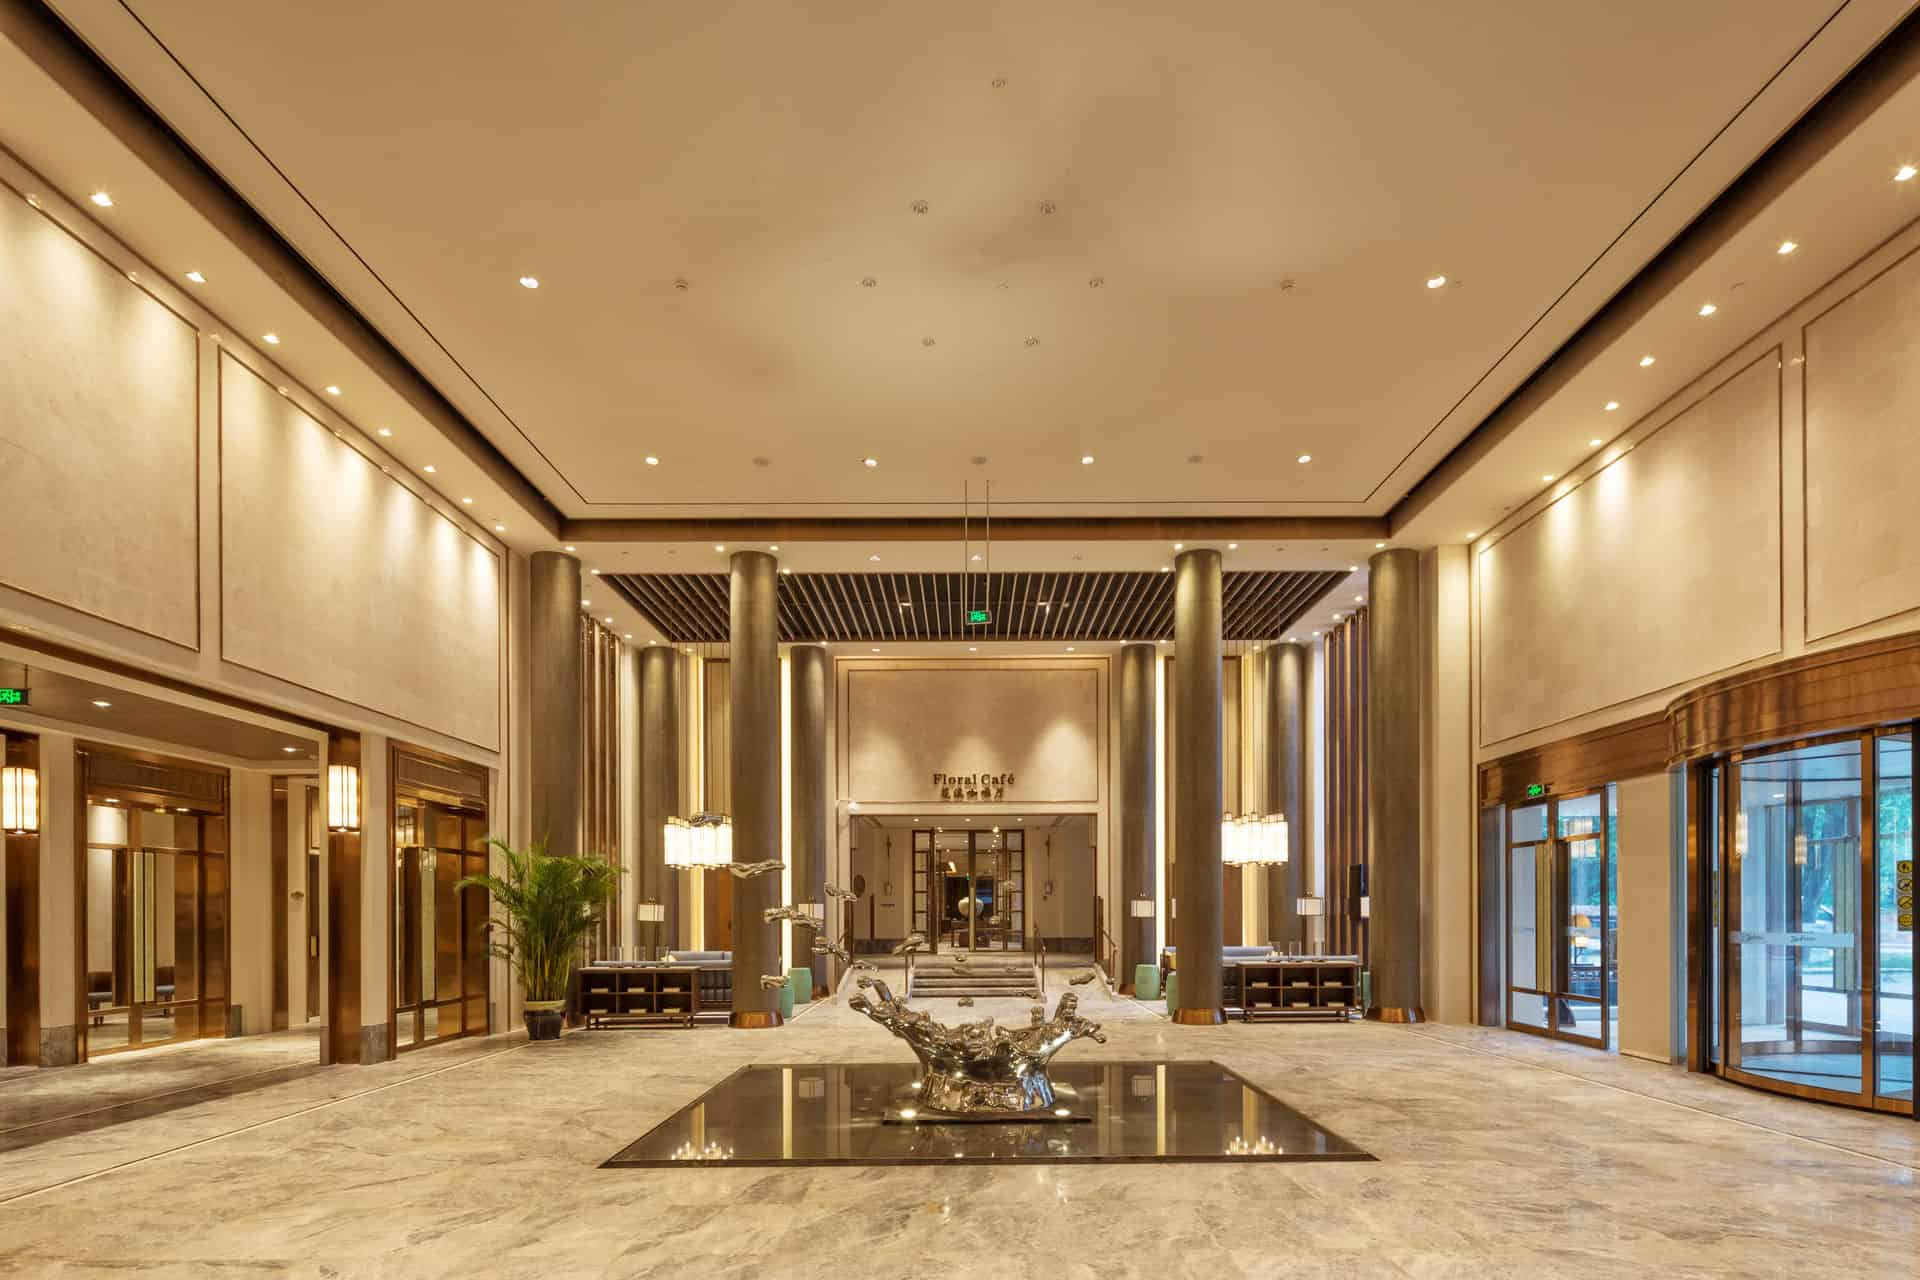 Can You Do a Photoshoot in a Hotel Lobby?